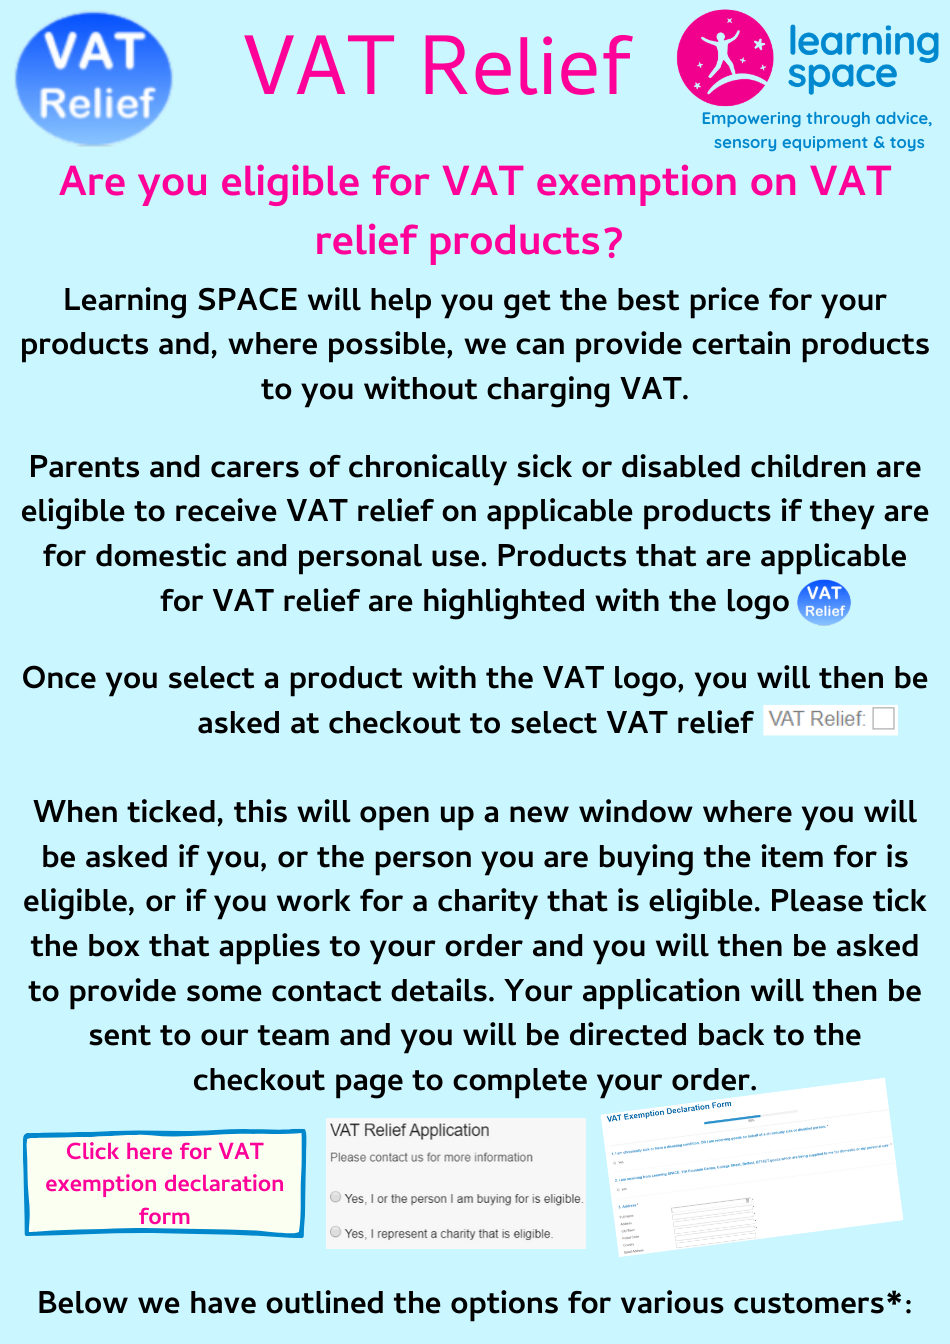 VAT Relief information updated February 2020